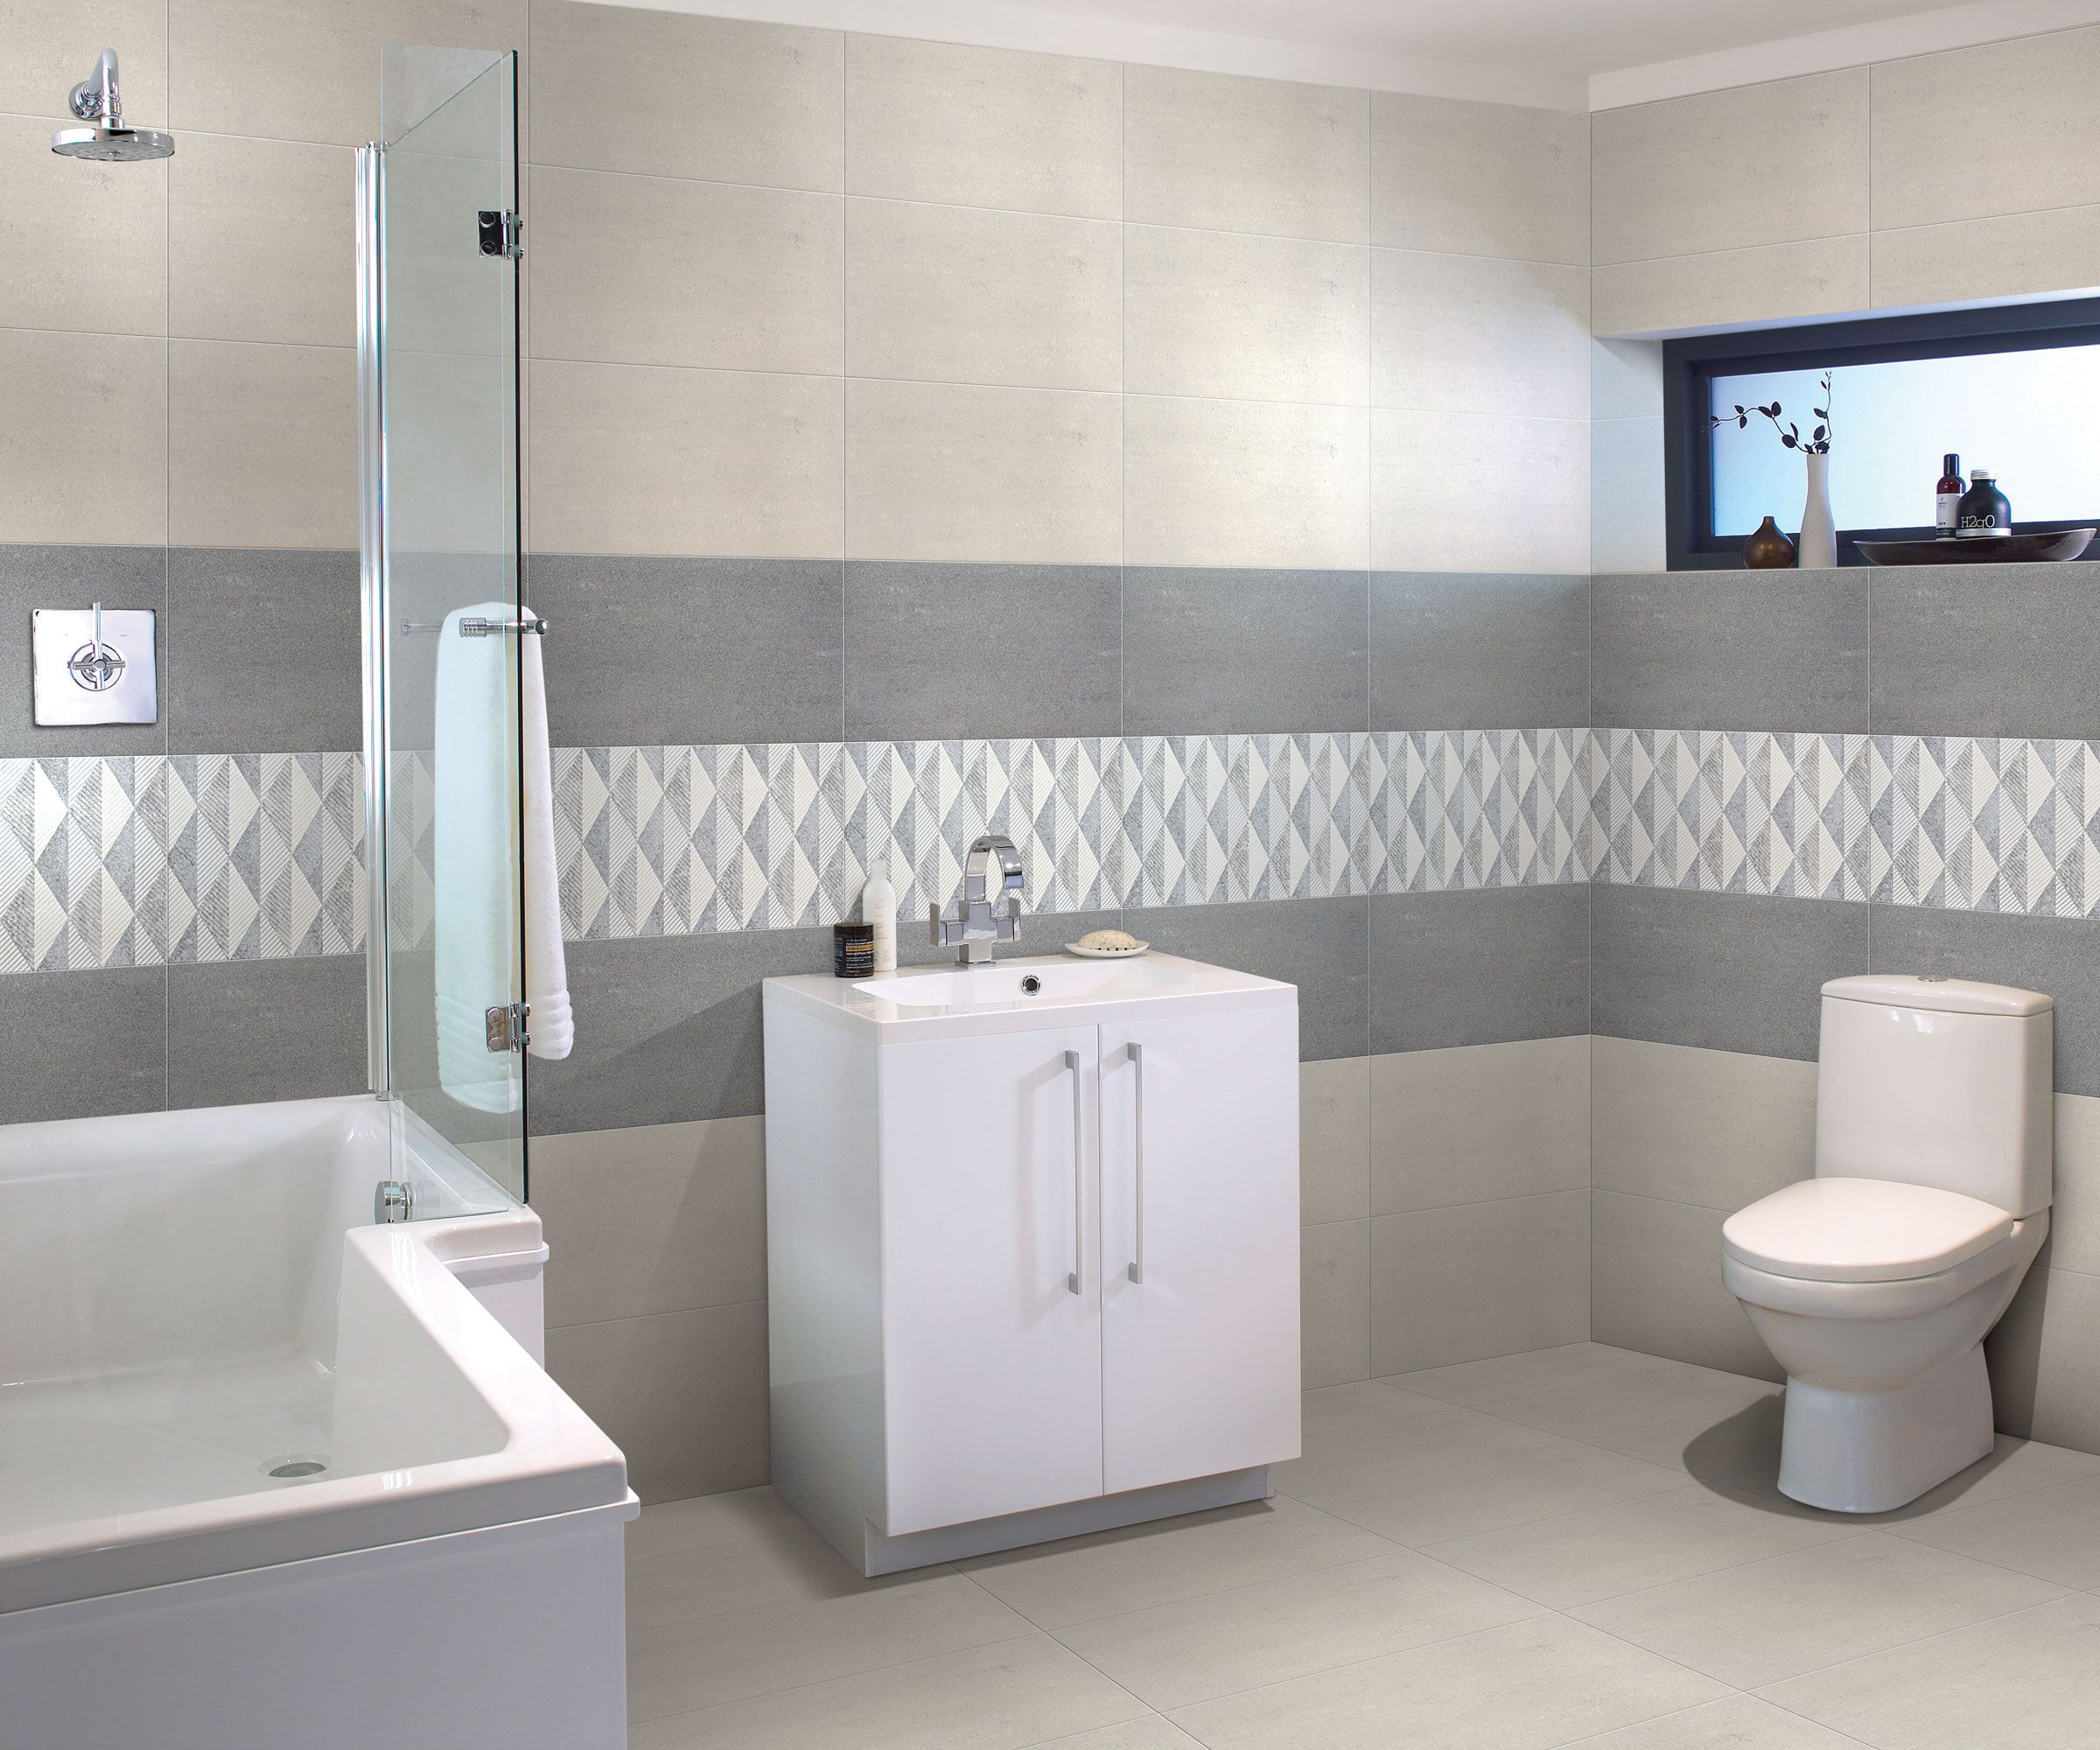 Tremendous Bathroom Wall Tiles Design Tile Designs India